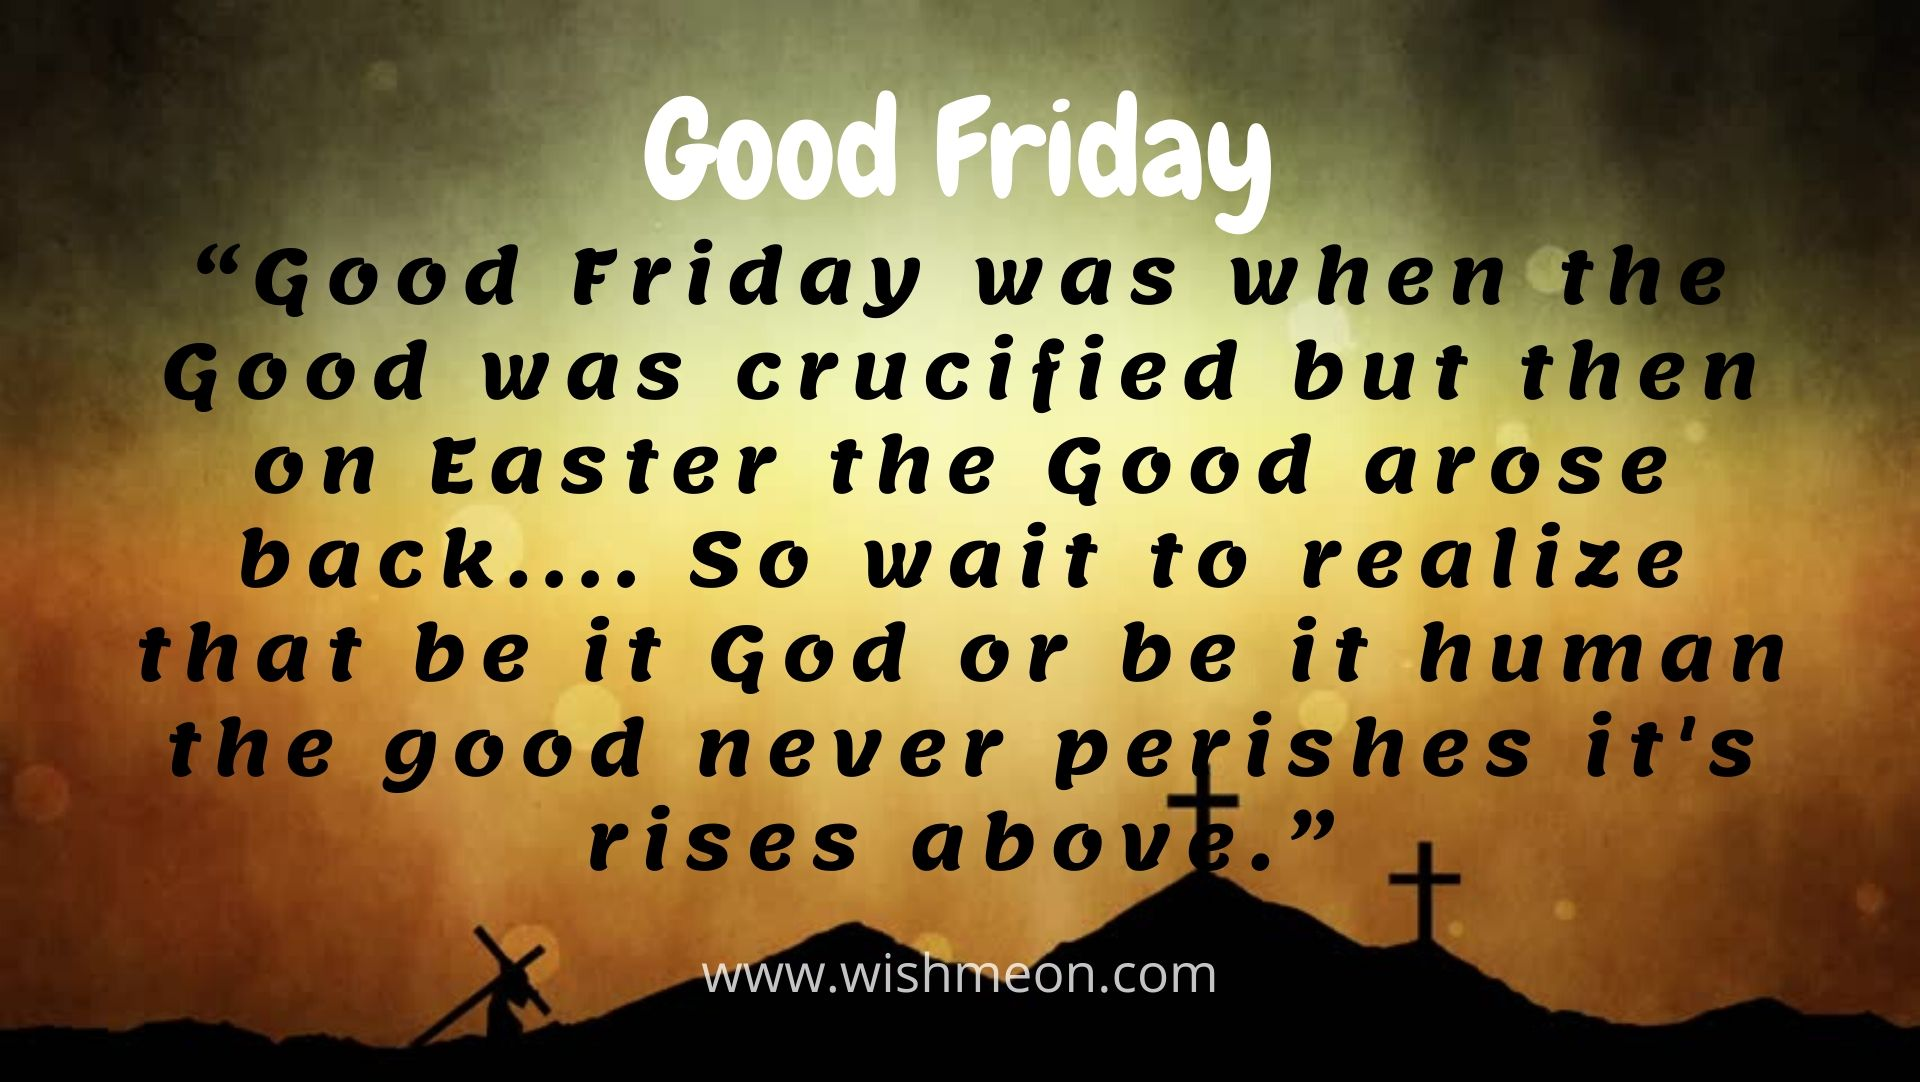 Friday Was When The Good Was Crucified